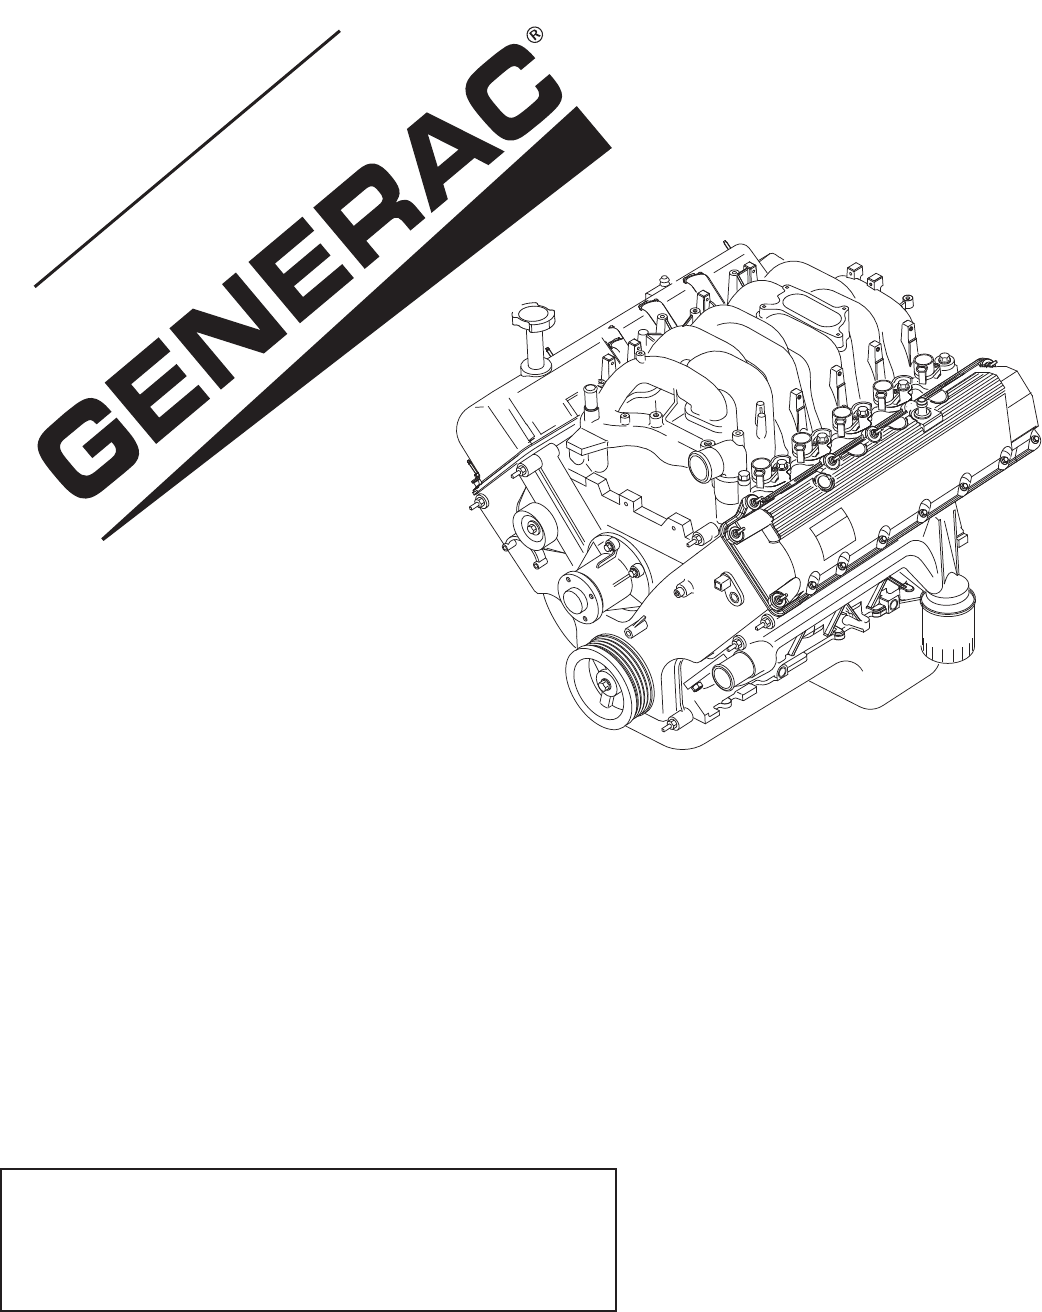 Download Generac Automobile Parts 0H0923PMNL manual and